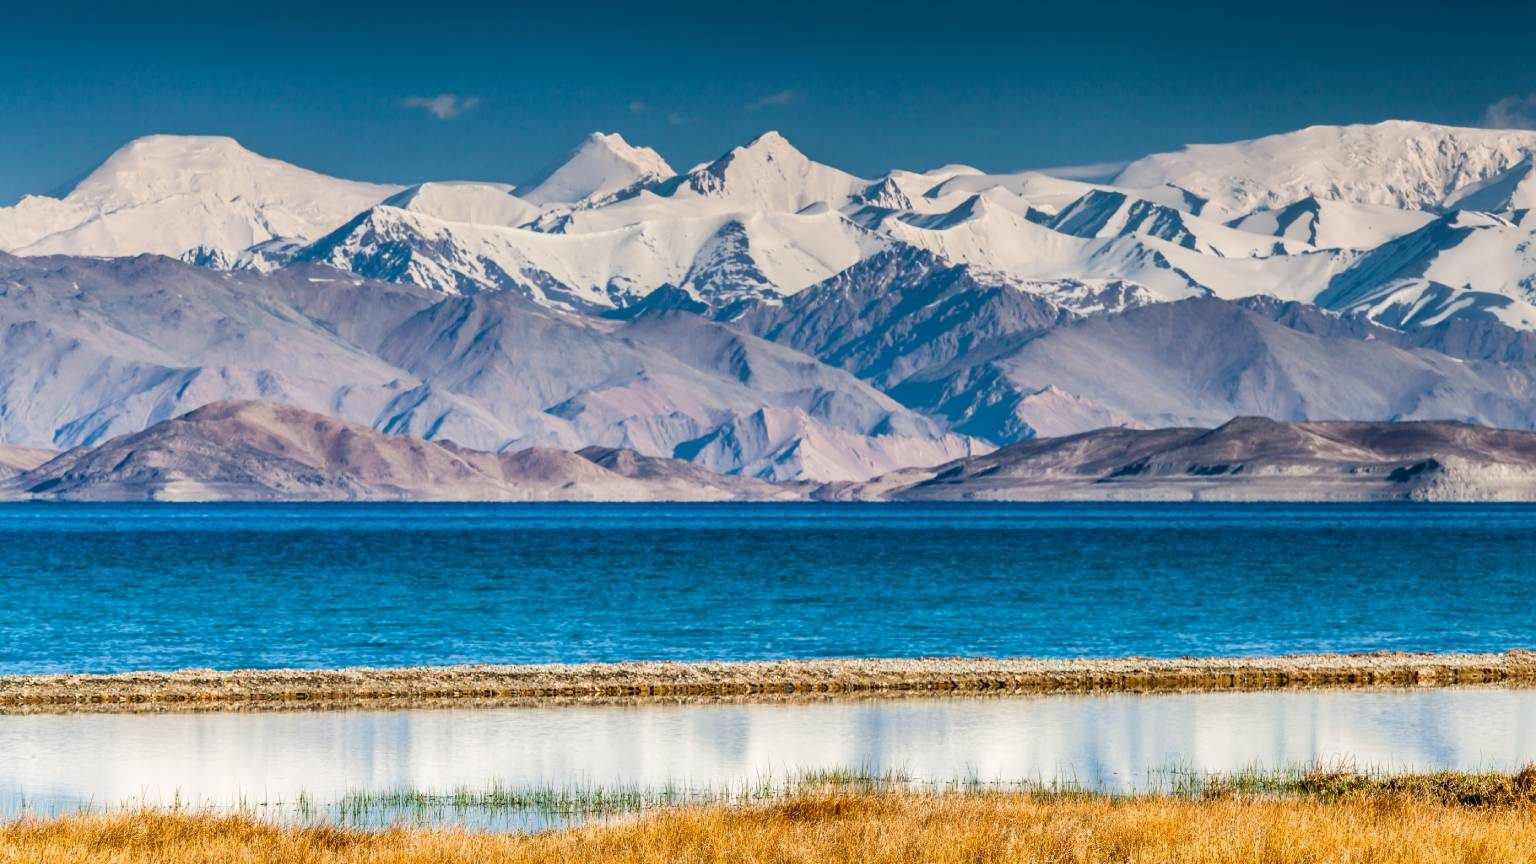 Beautiful view of Karakul lake in Pamir in Tajikistan